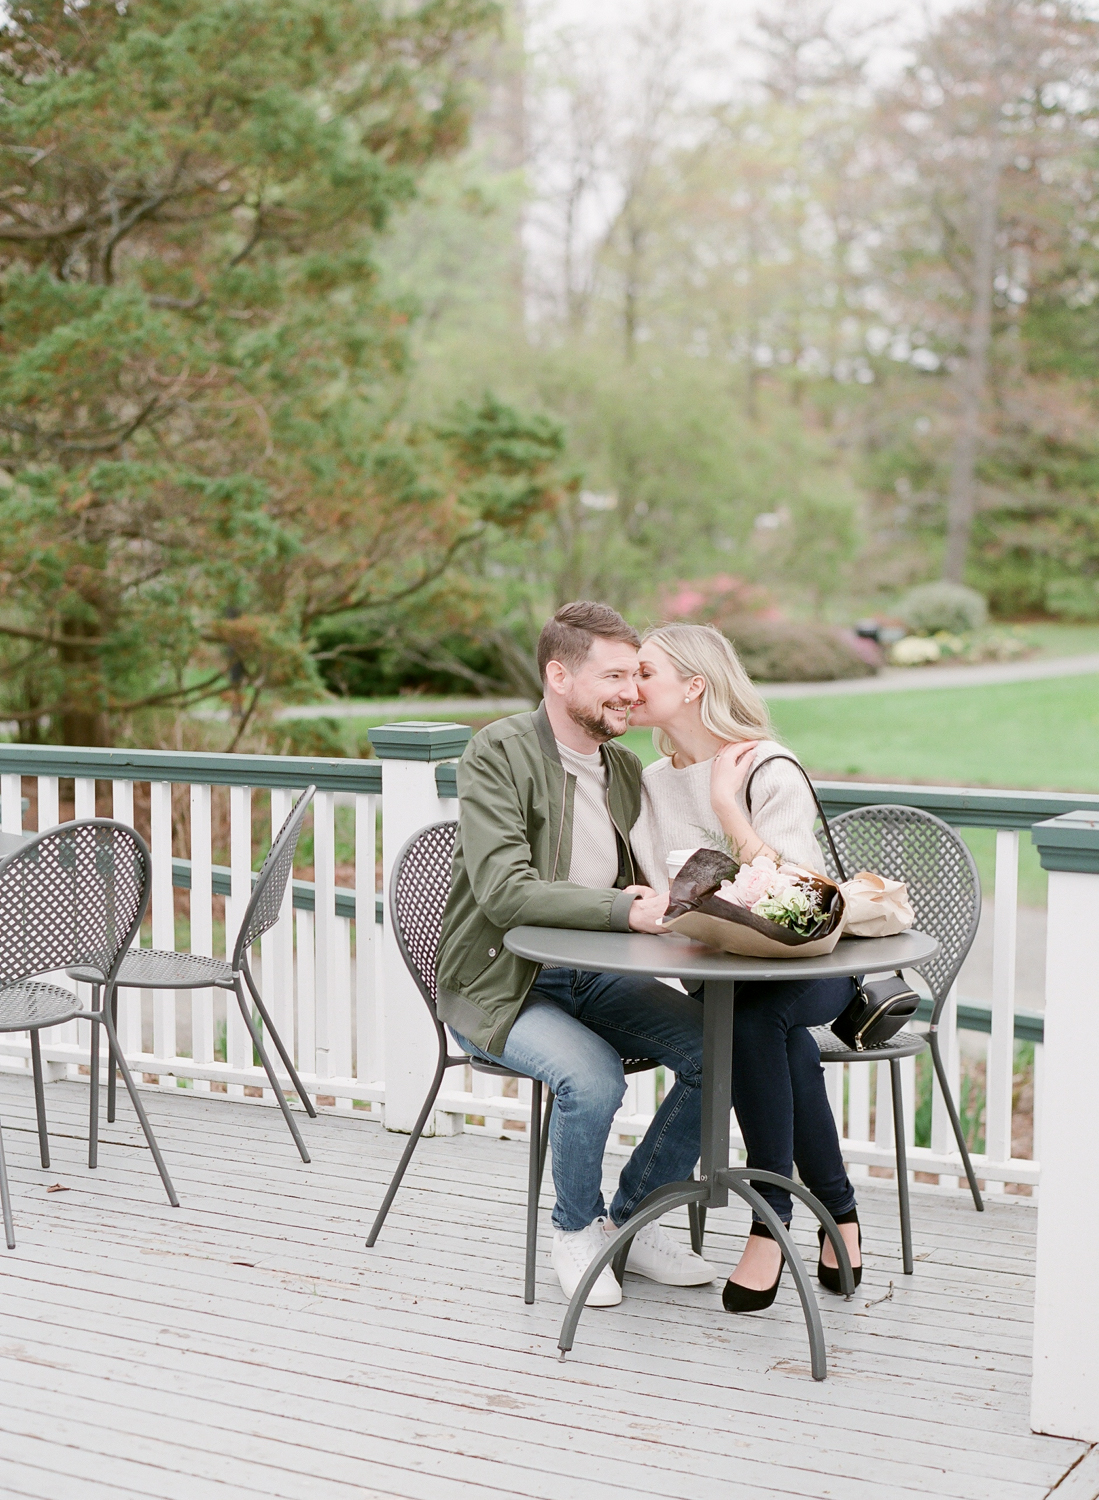 Halifax Engagement Session in Halifax Public Gardens captured on Film, Jacqueline Anne Photography, Napthali Carleton Makeup